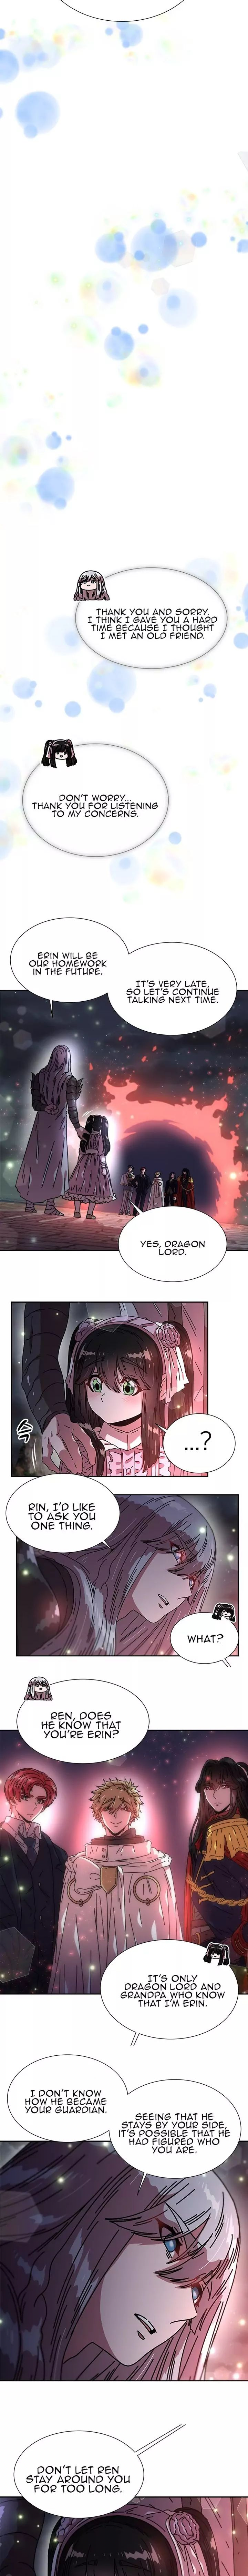 i_was_born_as_the_demon_lords_daughter_33_8